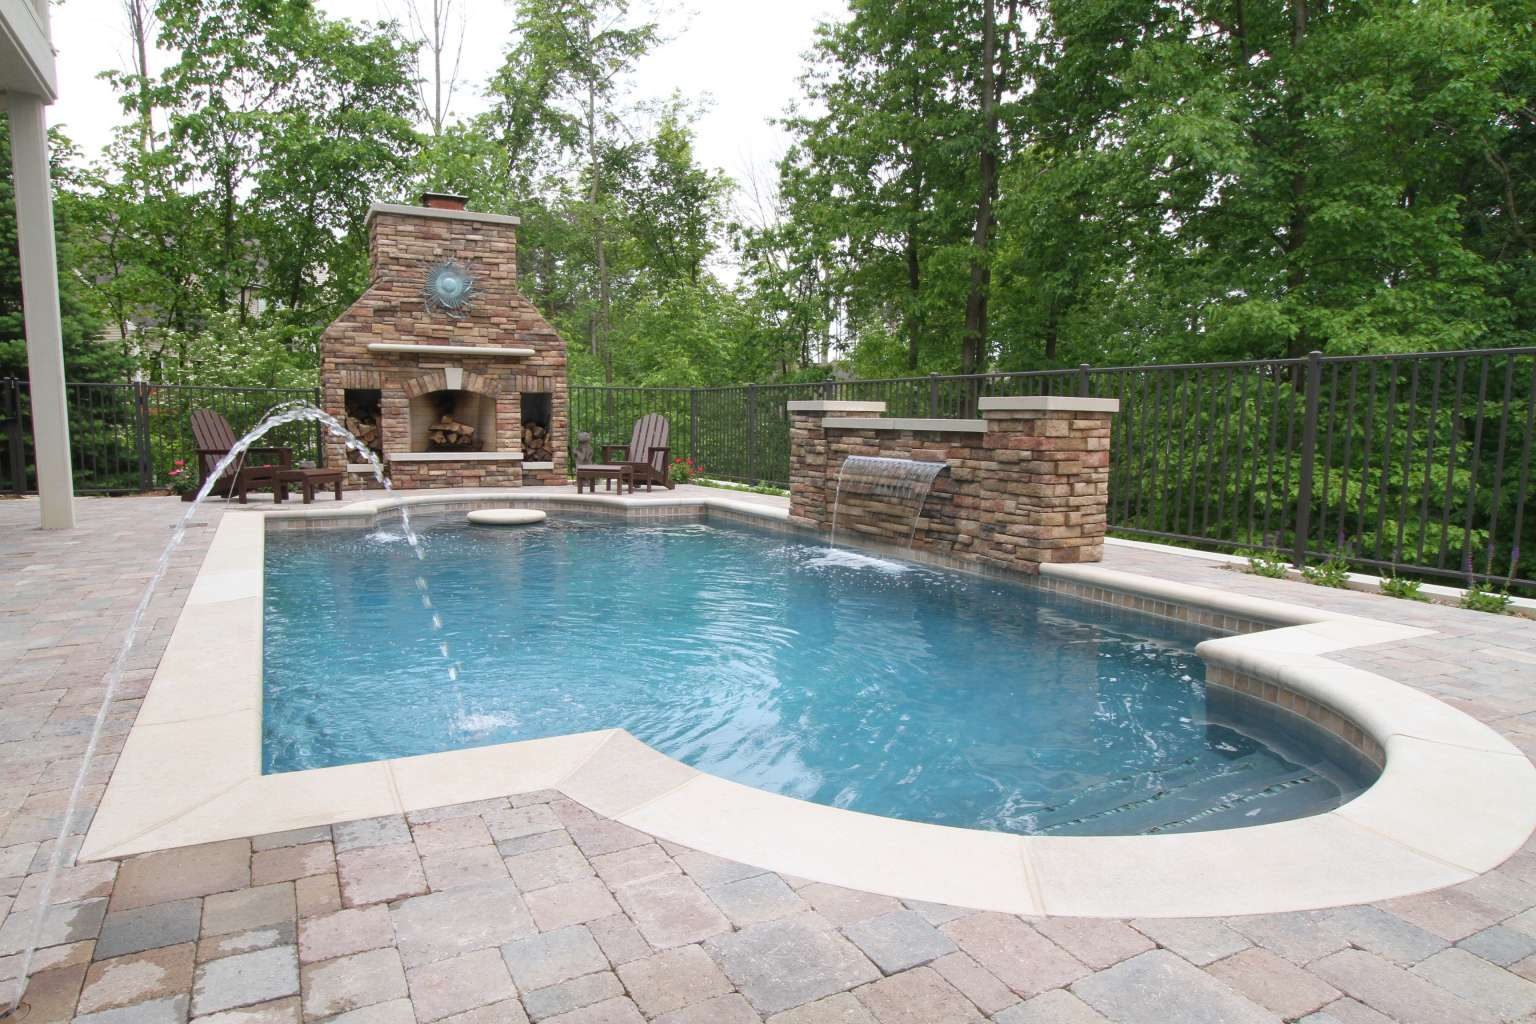 Grand Rapids Pool, Waterfeature, Fireplace, and Outdoor ... on Outdoor Kitchen By Pool id=51509